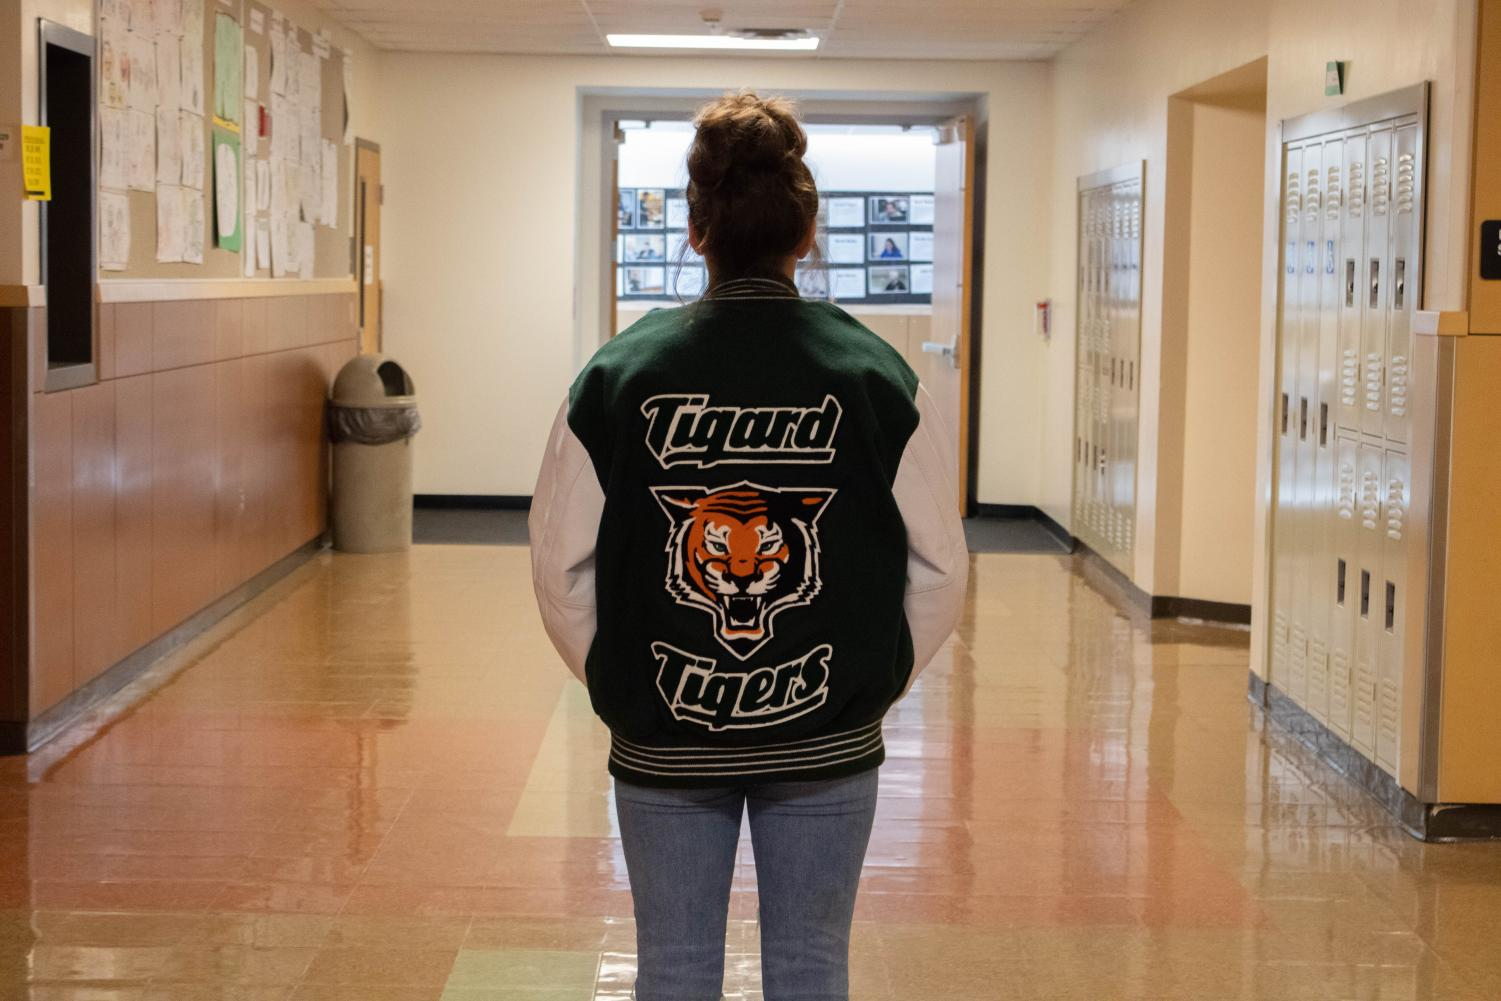 Letterman jackets are becoming a thing of the past. Locally, they are not as trendy.